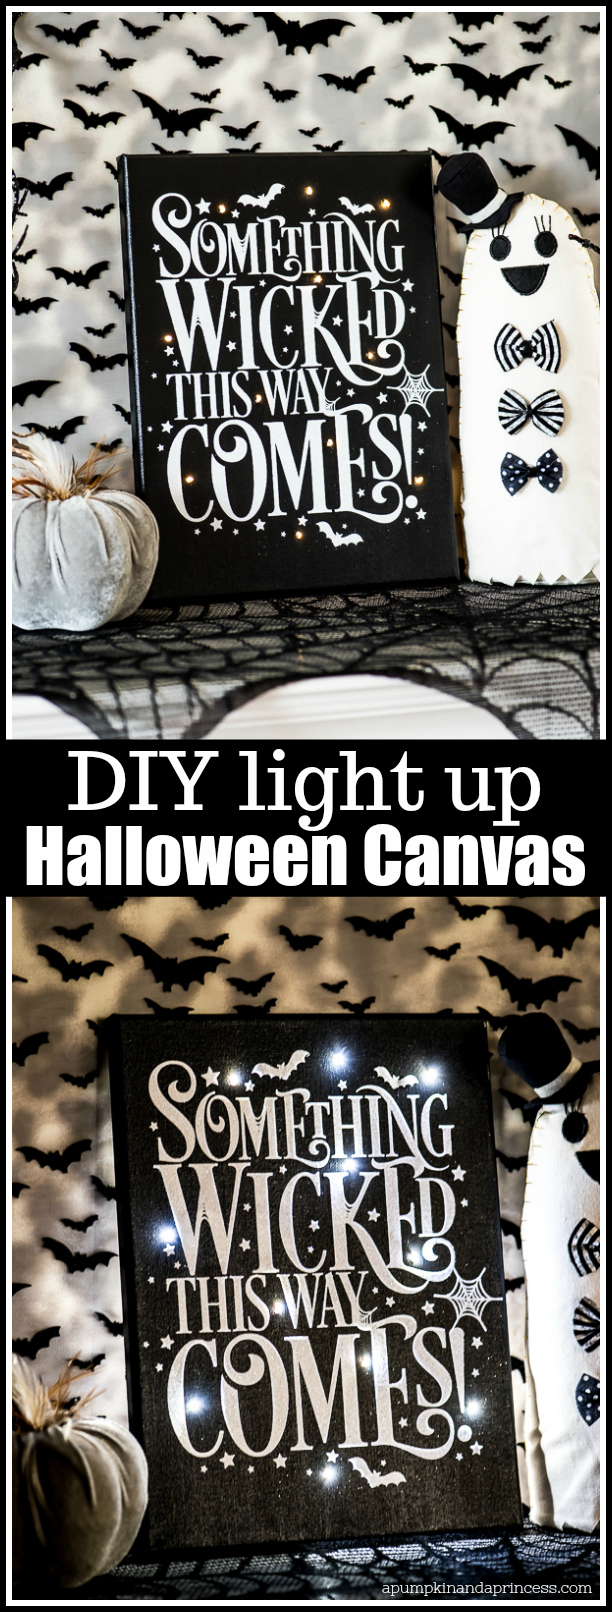 DIY Halloween Twinkle Light Canvas - how to make a Halloween twinkle light canvas using glitter heat transfer vinyl and fairy lights.